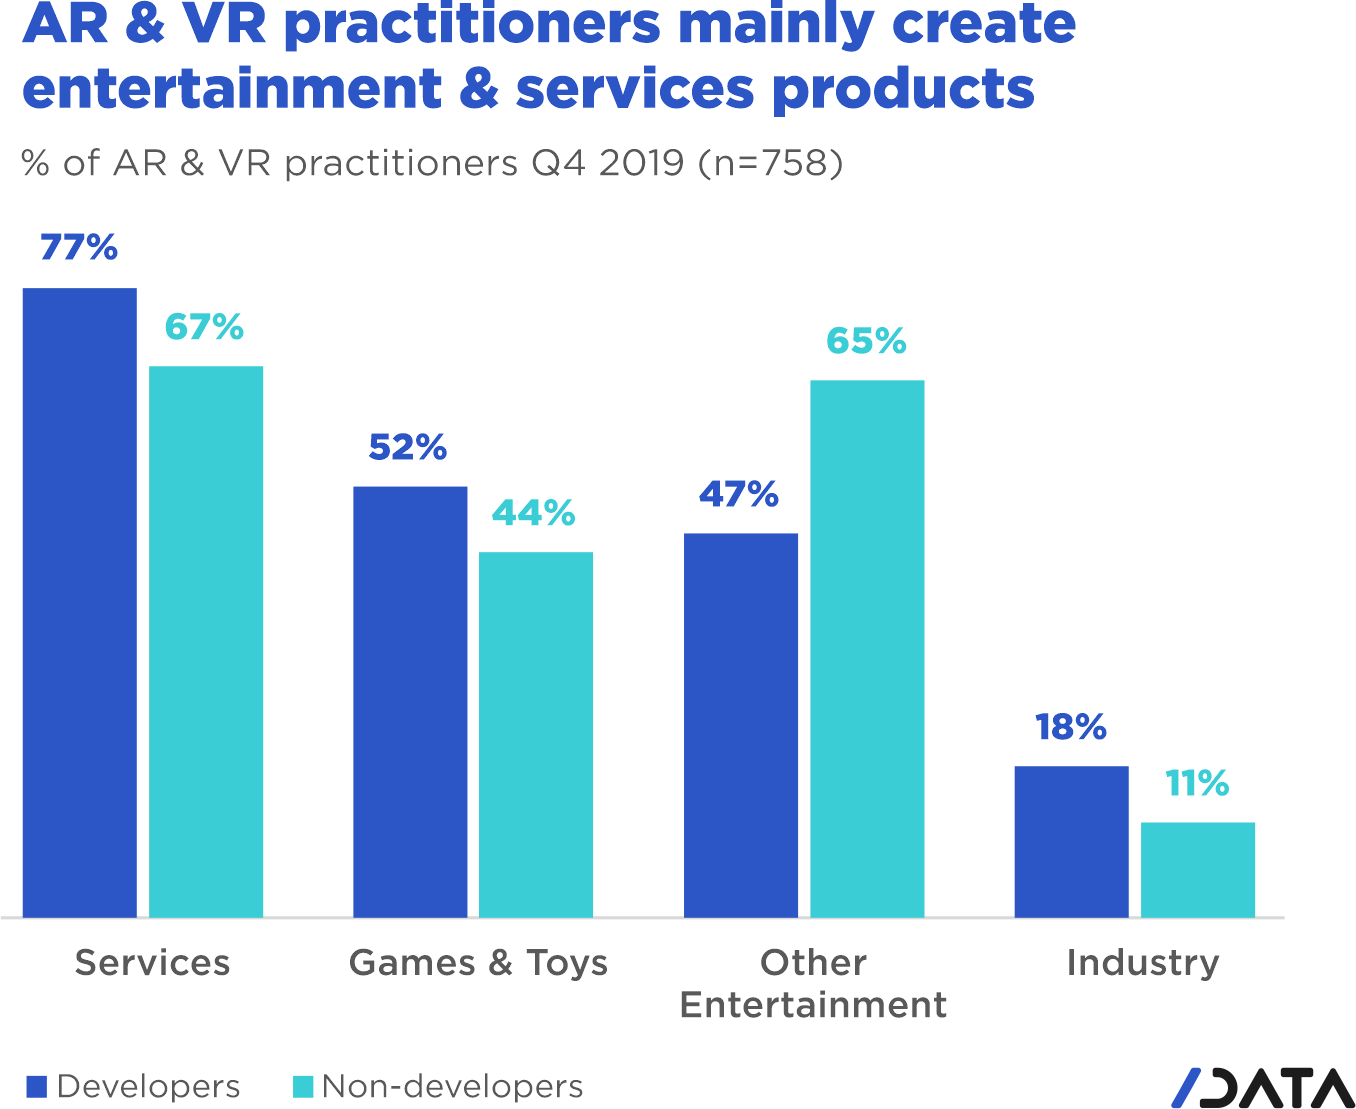 AR/VR trends. AR & VR practitioners mainly create entertainment & services products